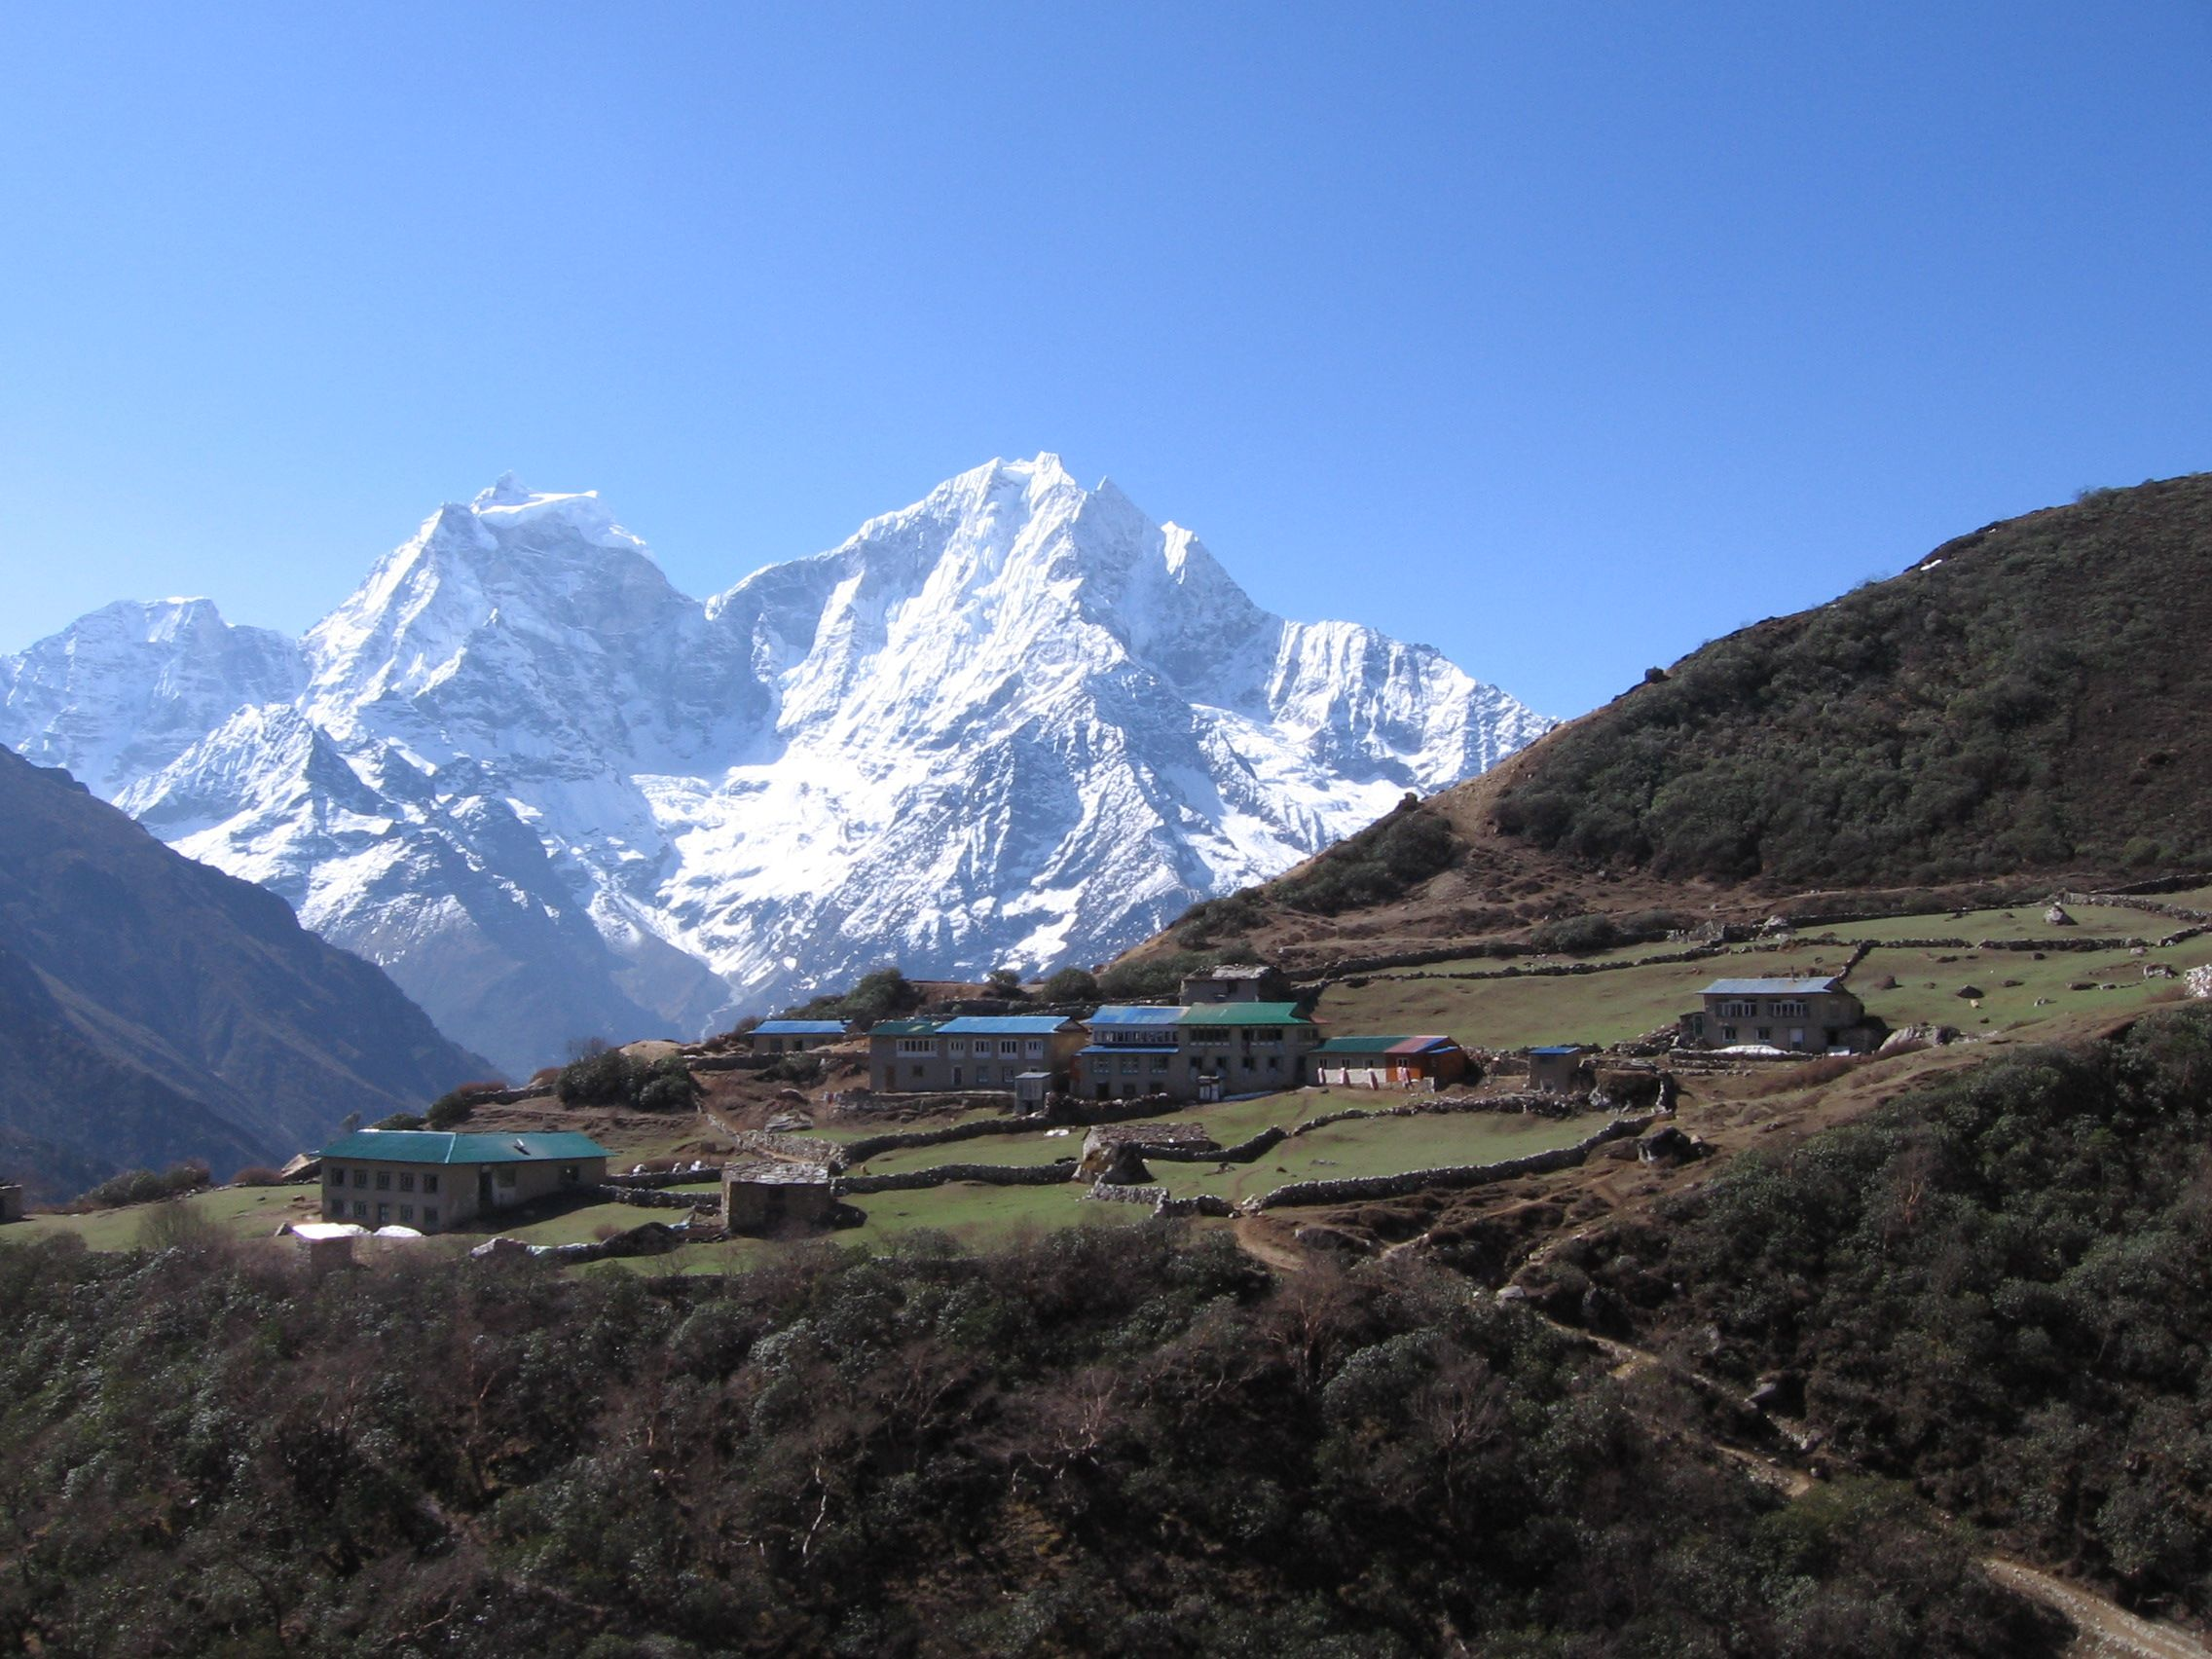 Sherpa yak station on the way to Mt. Everest.